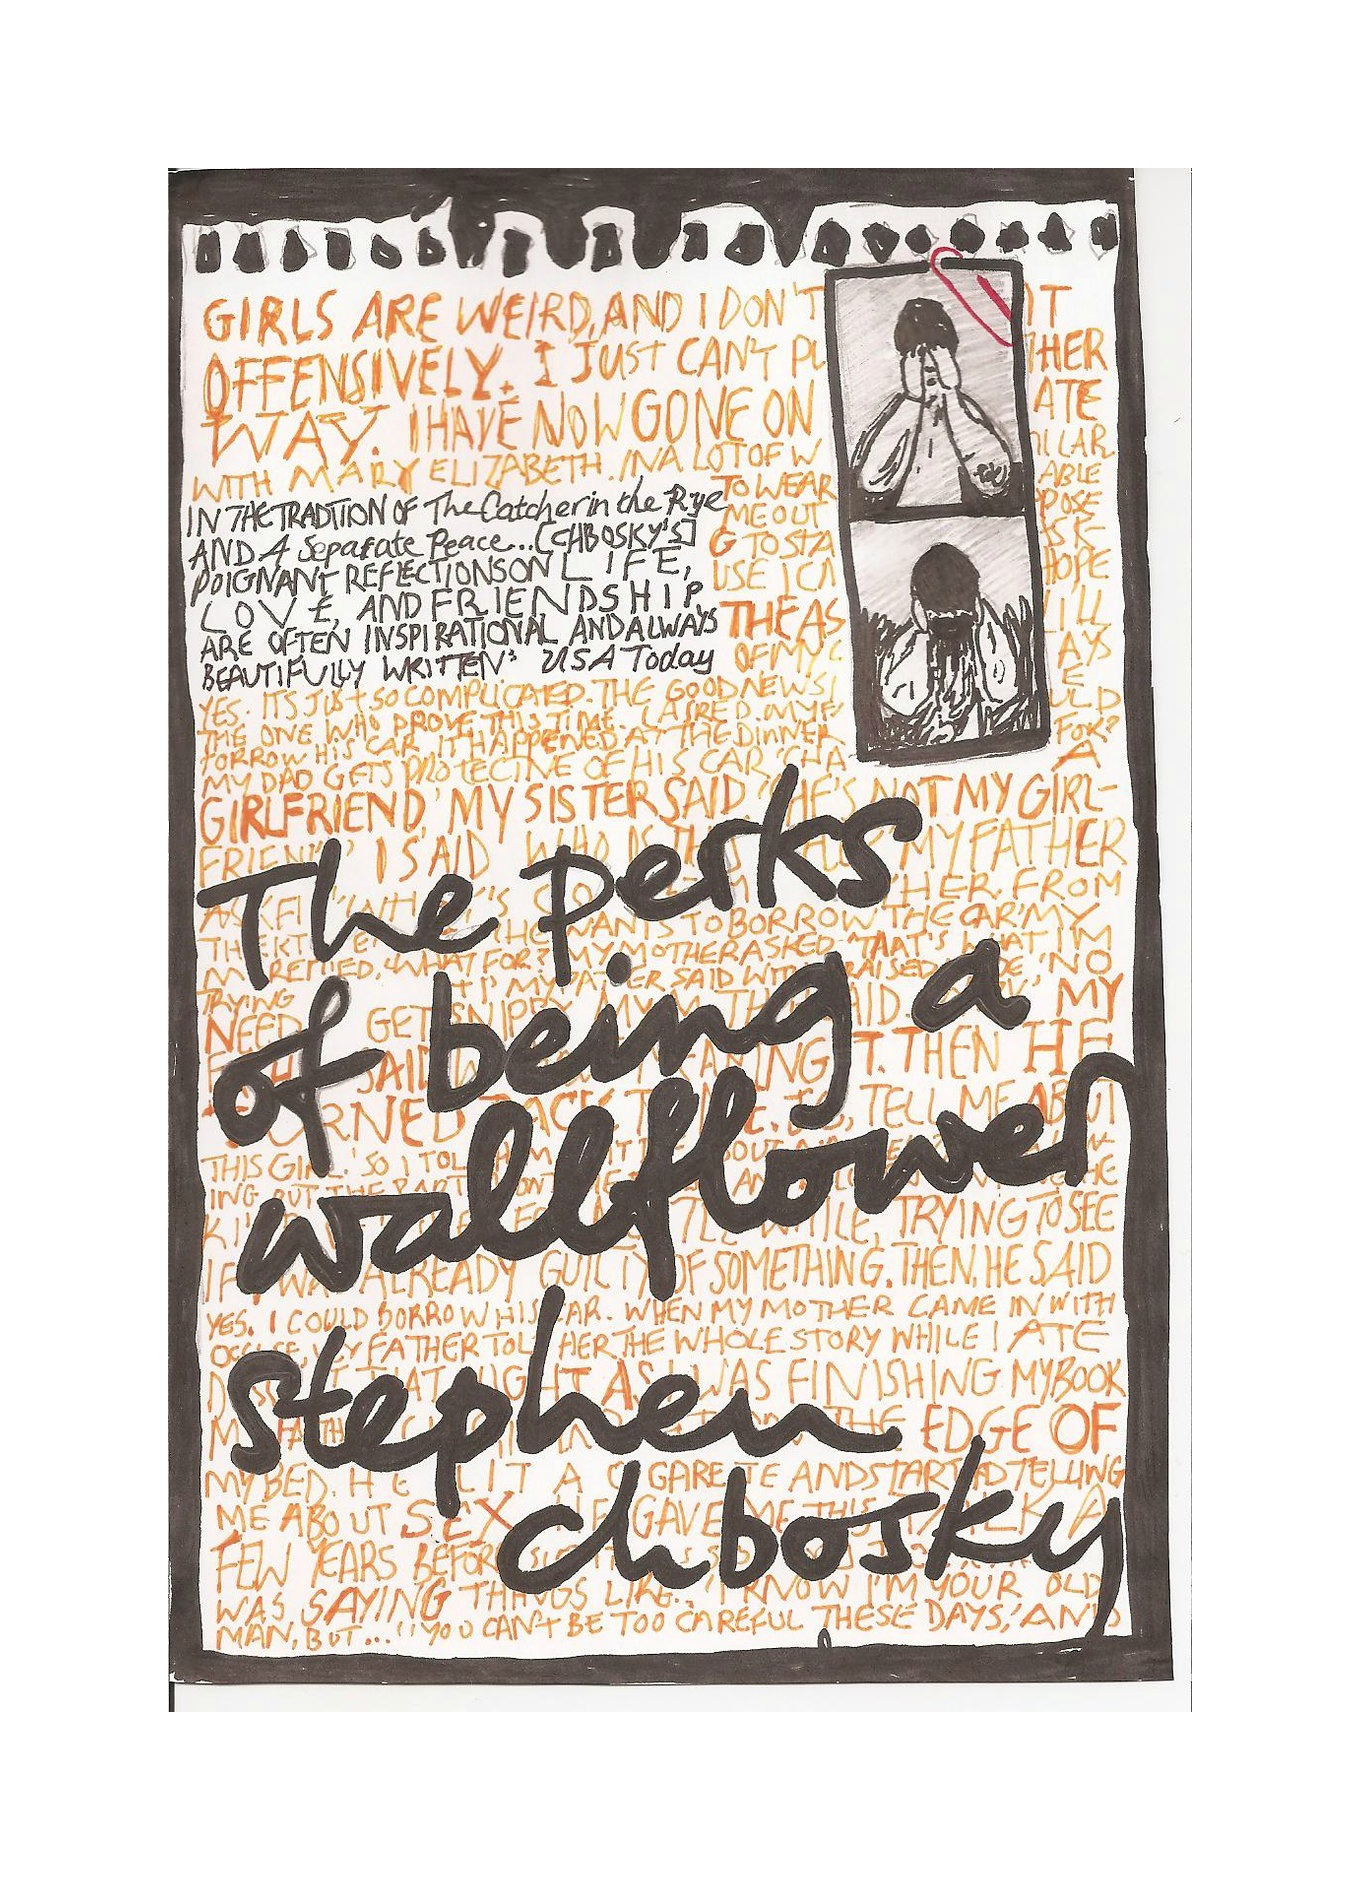 Perks Of Being A Wallflower Original Cover